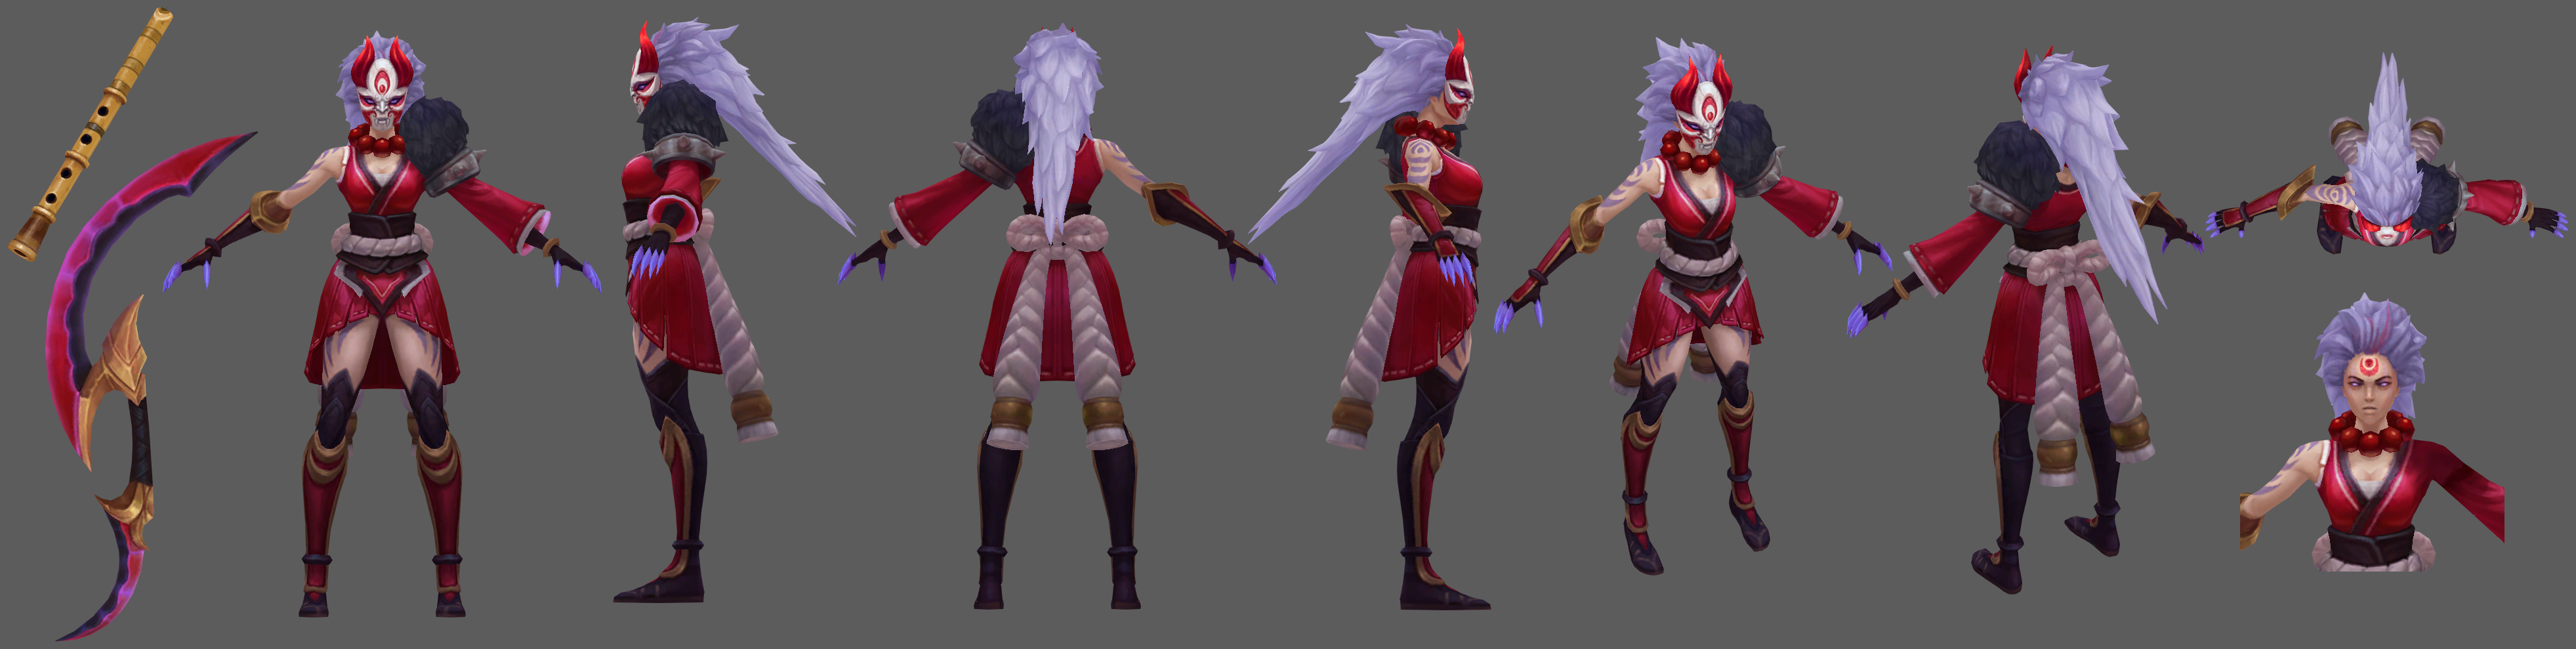 Diana BloodMoon Model 01.png